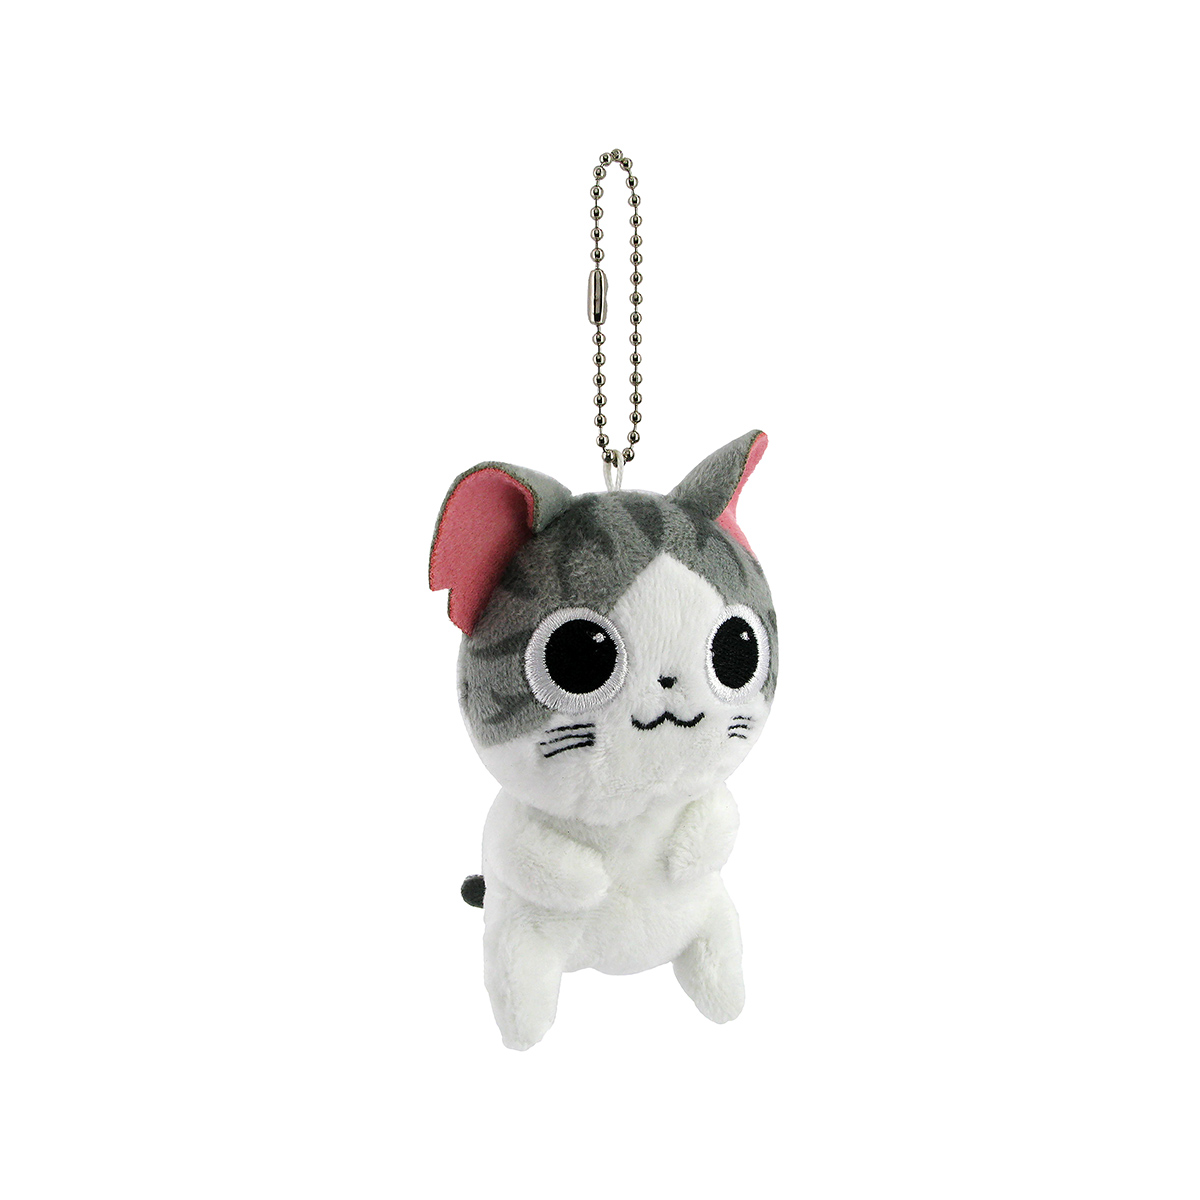 Chi's Sweet Home keyring